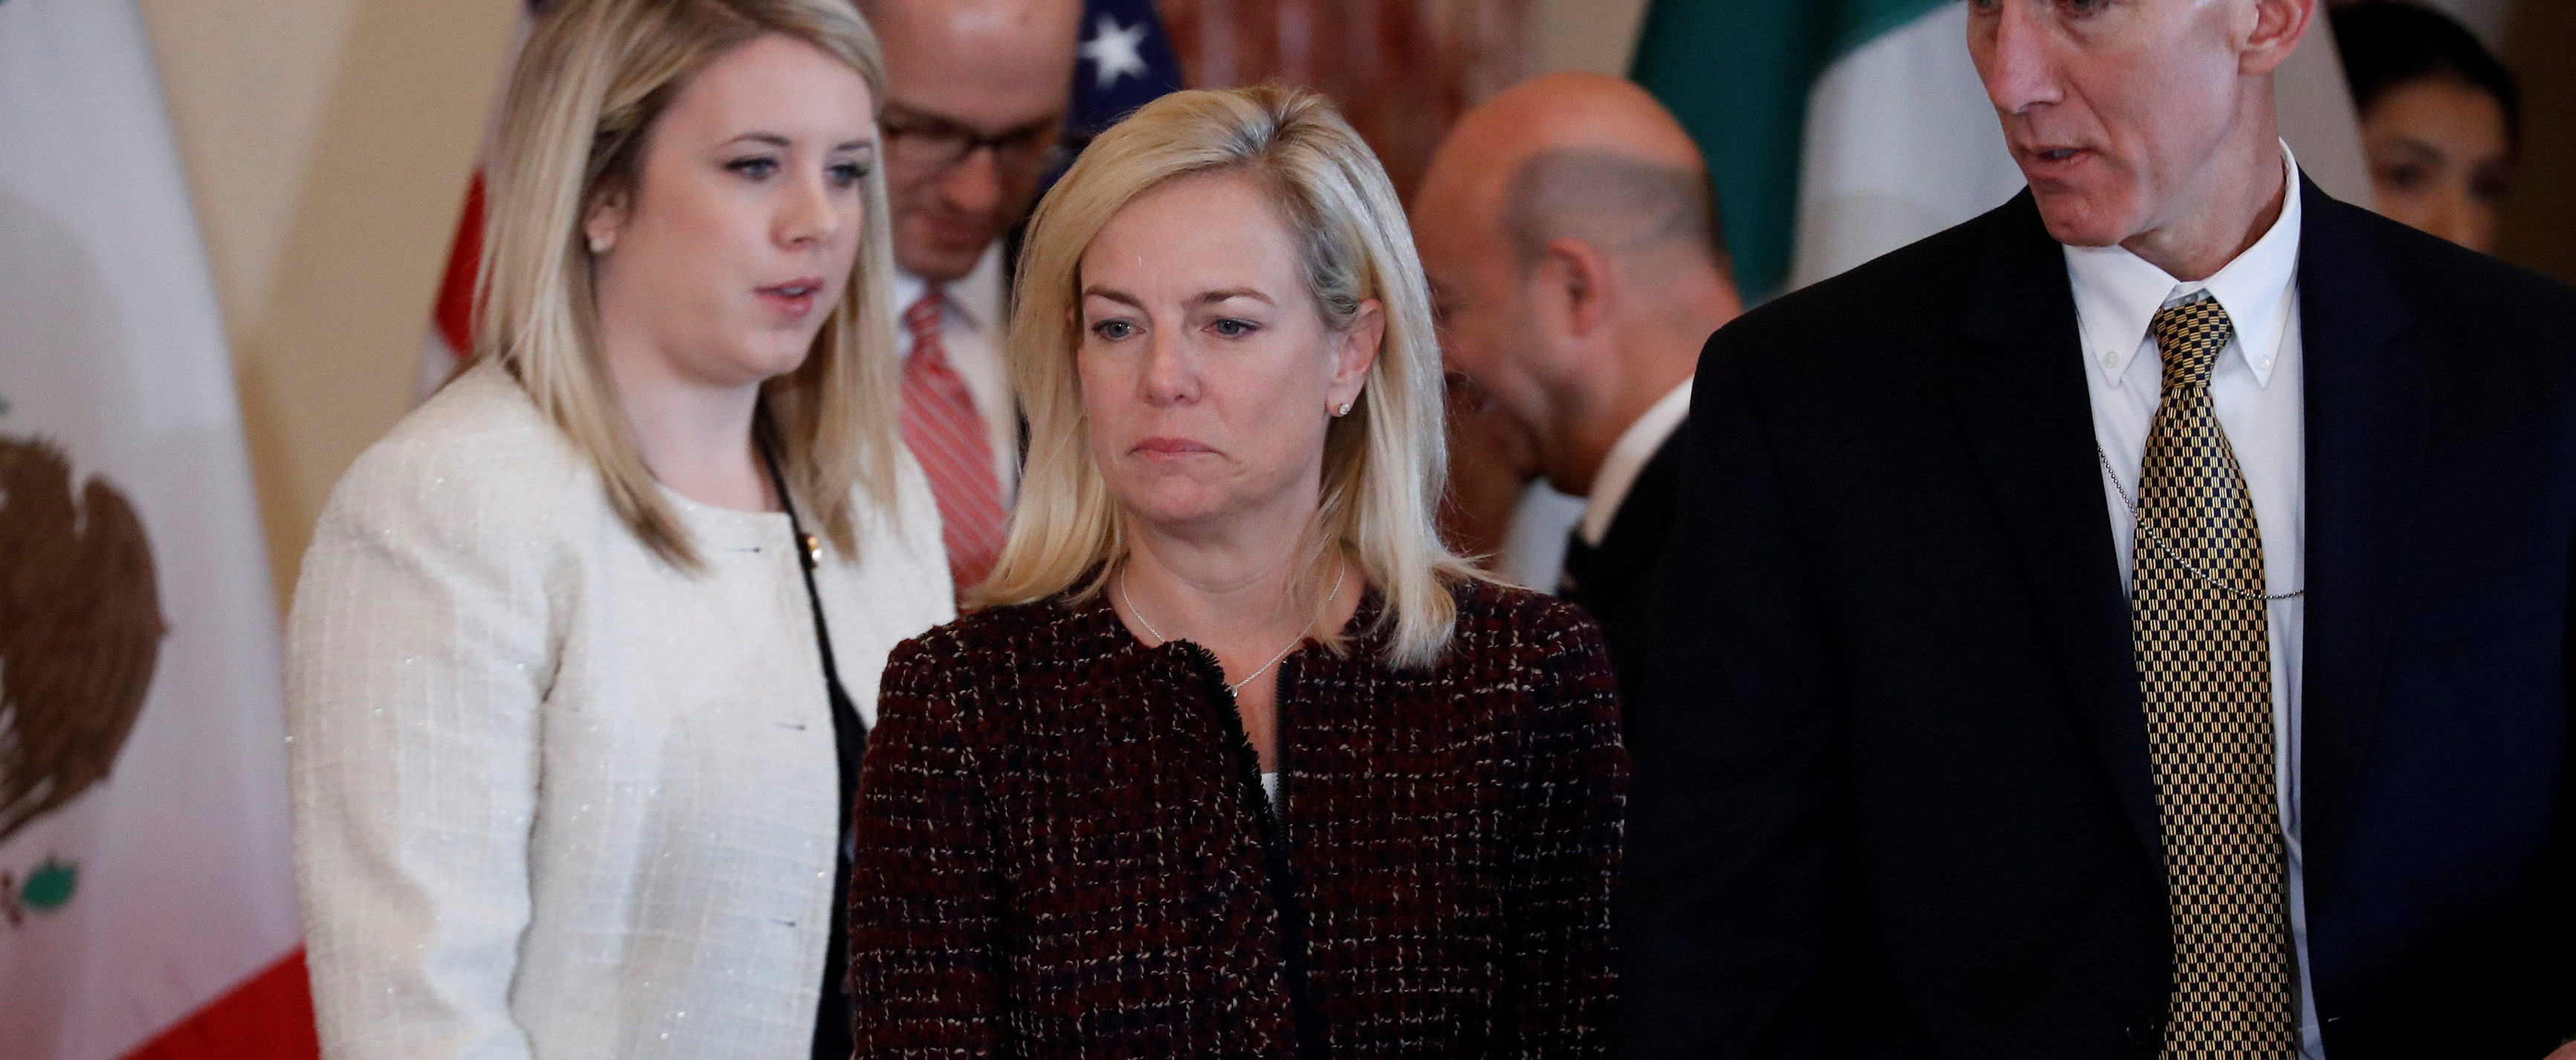 Department of Homeland Security Secretary Kirstjen Nielsen looks for her seat prior to a meeting to discuss strategies to disrupt transnational criminal organisations at the State Department in Washington, U.S., December 14, 2017. REUTERS/Aaron P. Bernstein